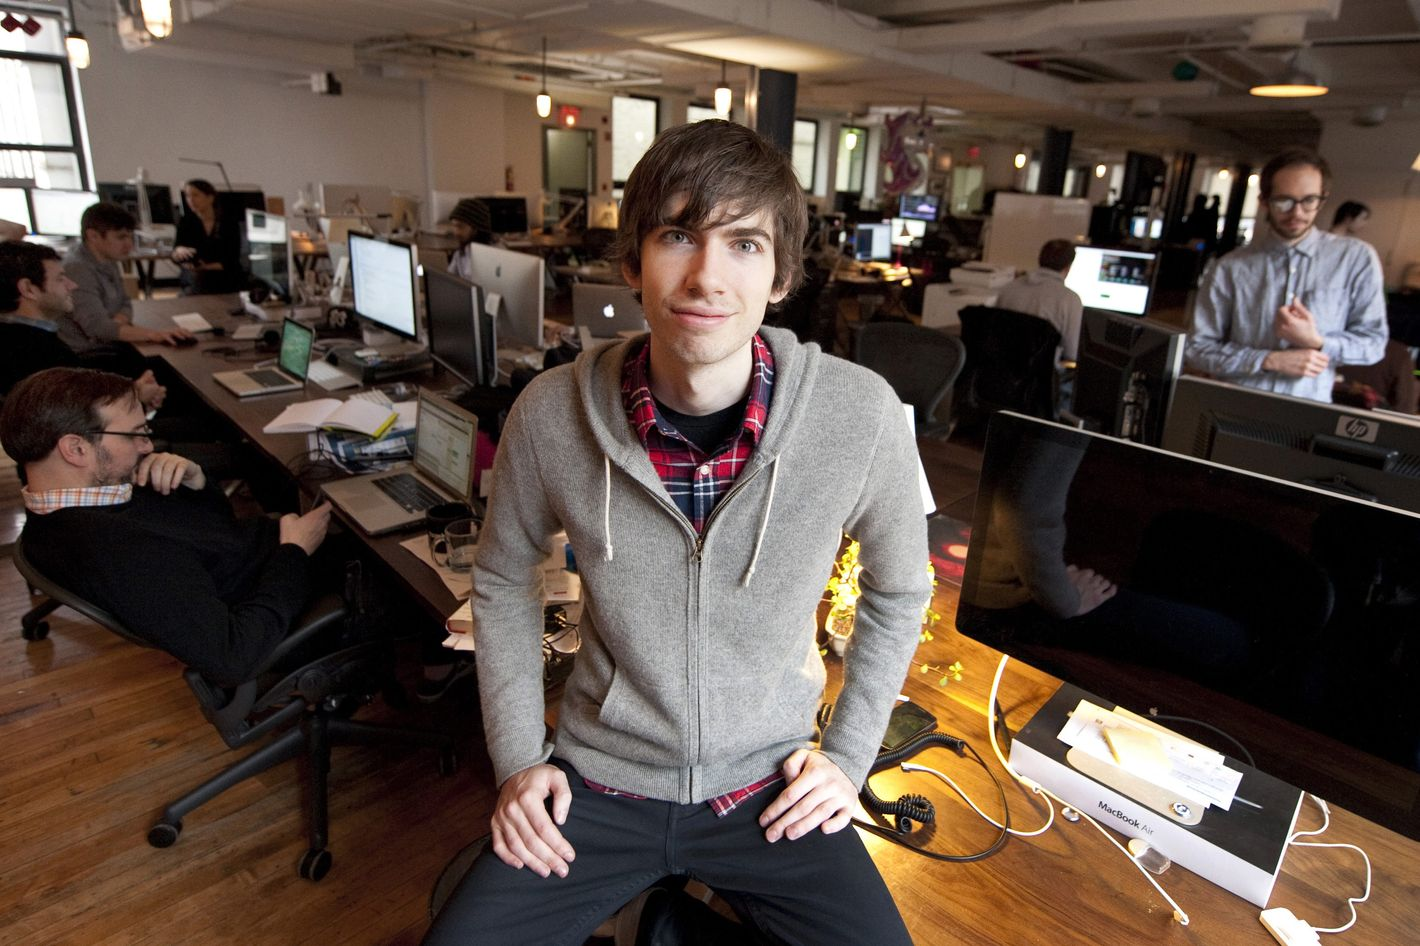 Tumblr-founder David Karp poses for a photo in the headquarters of the microblogging platform and social networking website on February 2, 2012 in New York. The website, which allows users to post text, images, videos, links, quotes and audio to their tumblelog, a short-form blog, was founded by Karp in 2007.